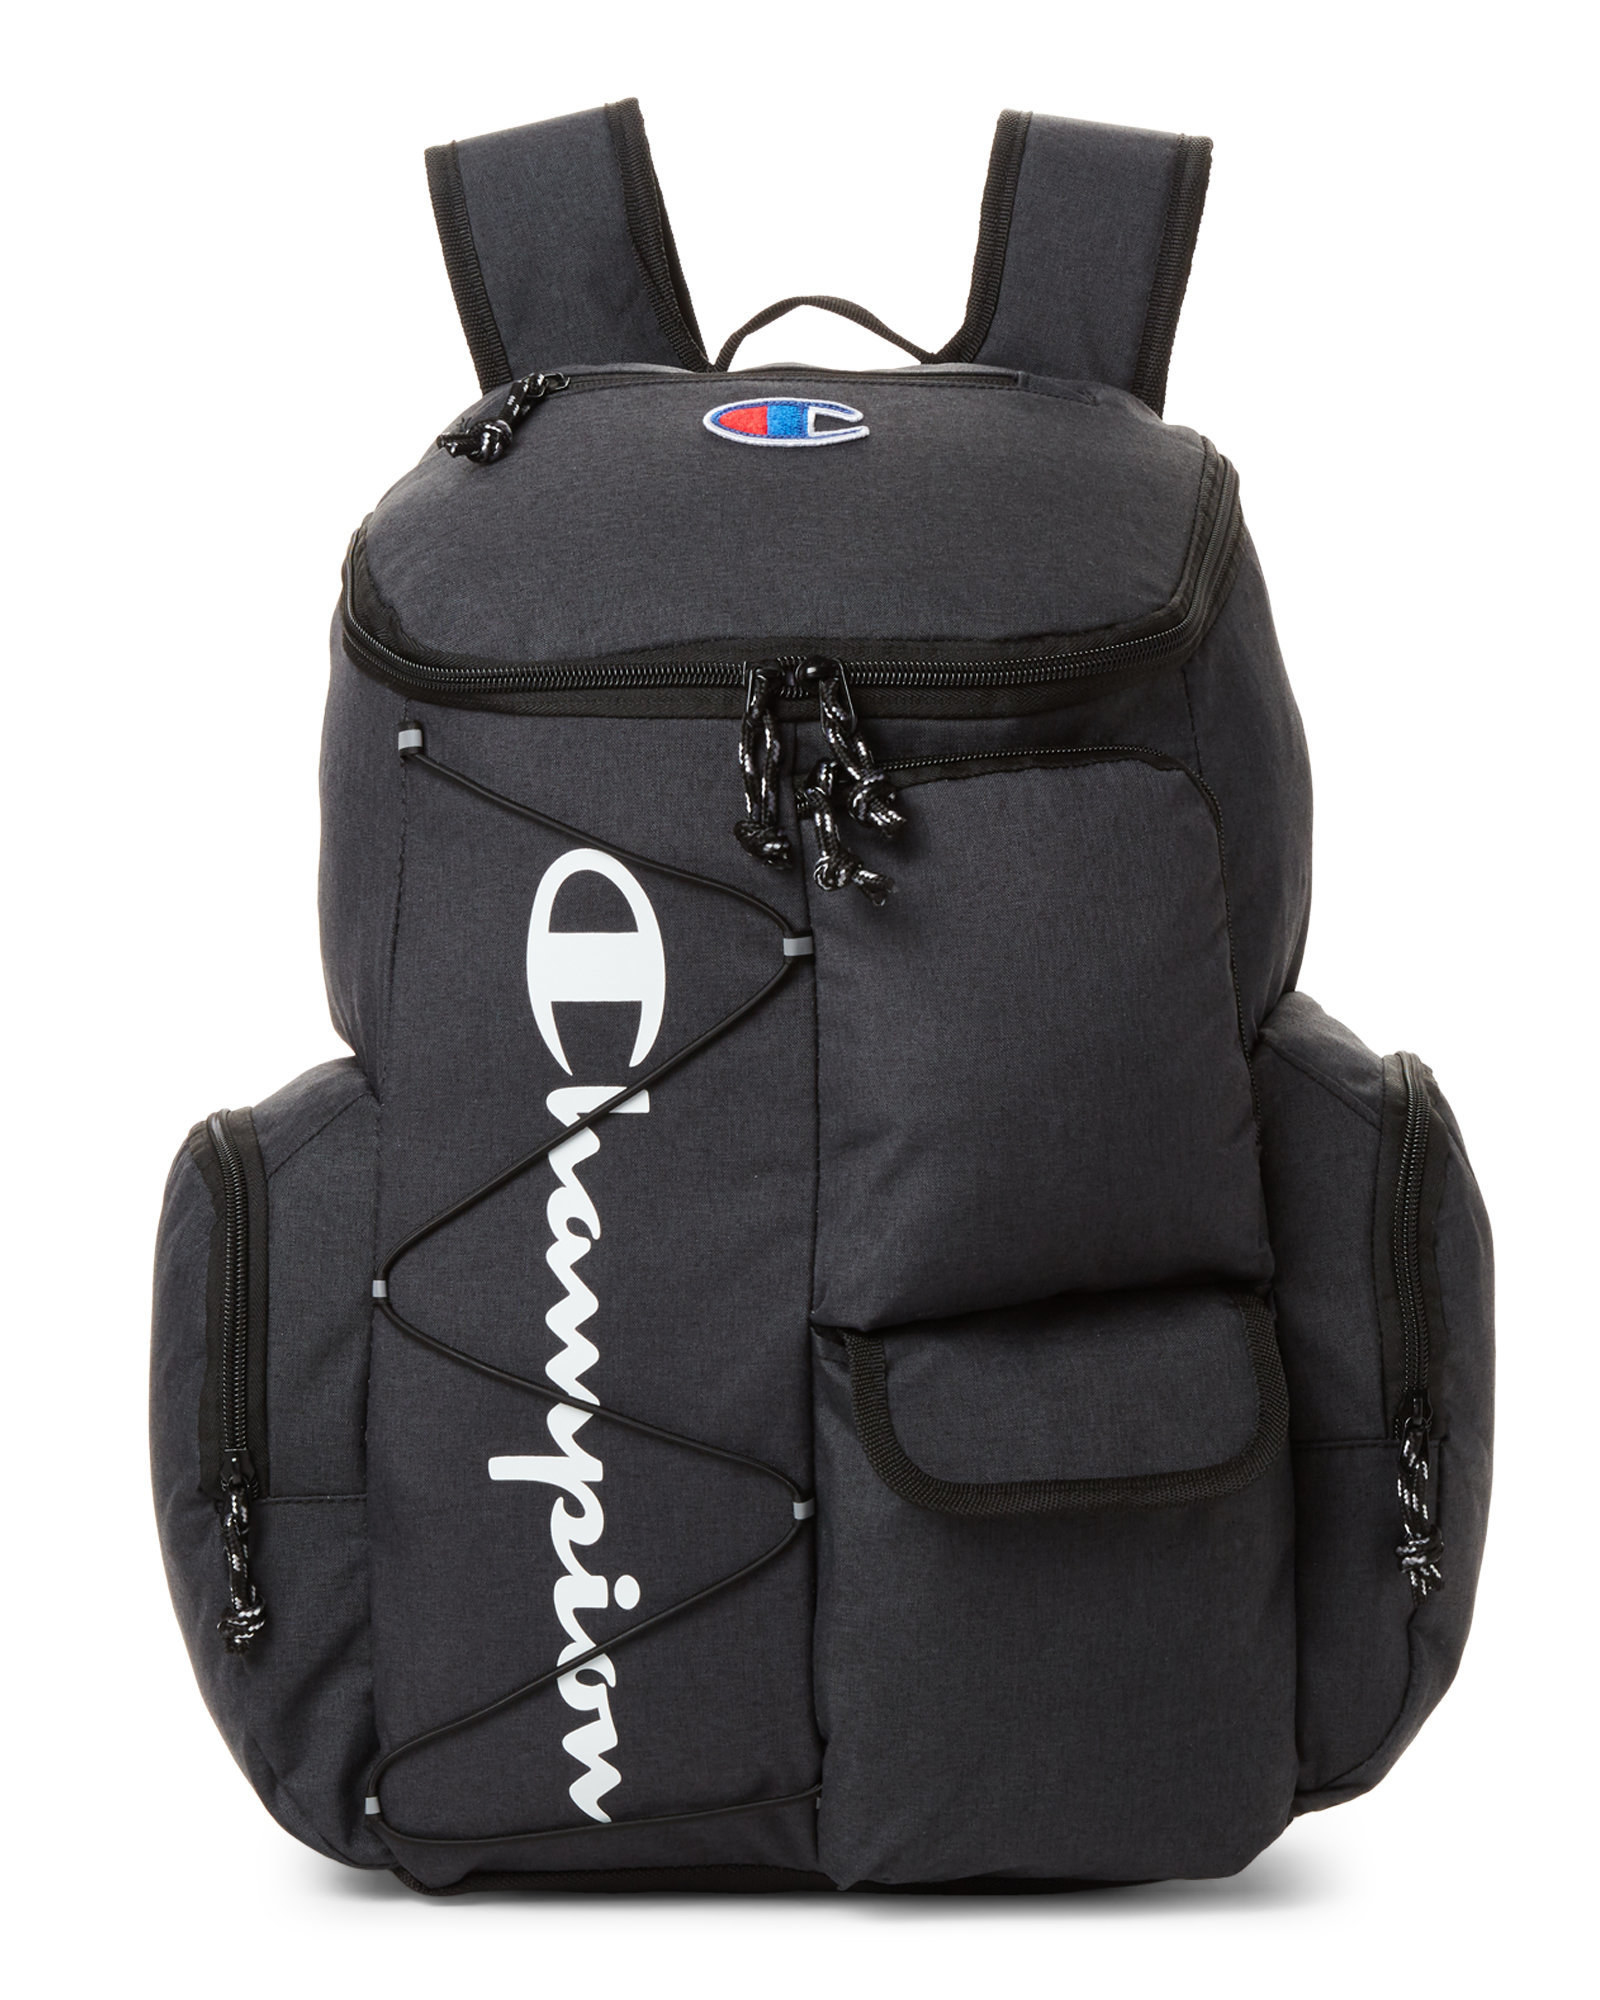 Century 21 drops prices on name-brand backpacks down to pocket money (for  varying sizes of pockets). 83587a270ab17